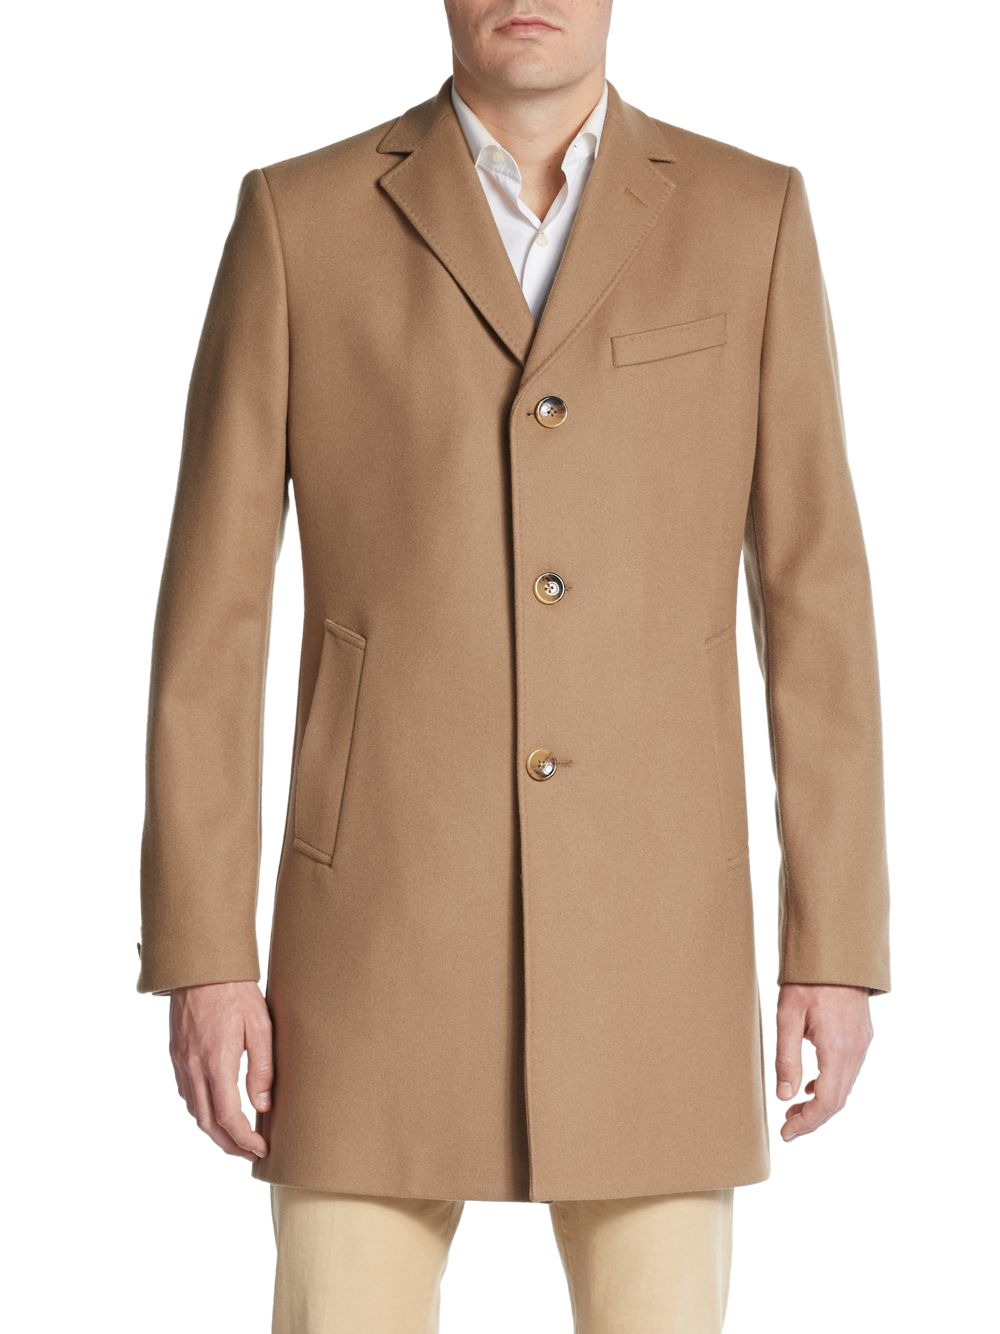 J.lindeberg Wolger Compact Melton Wool Coat in Natural for Men | Lyst